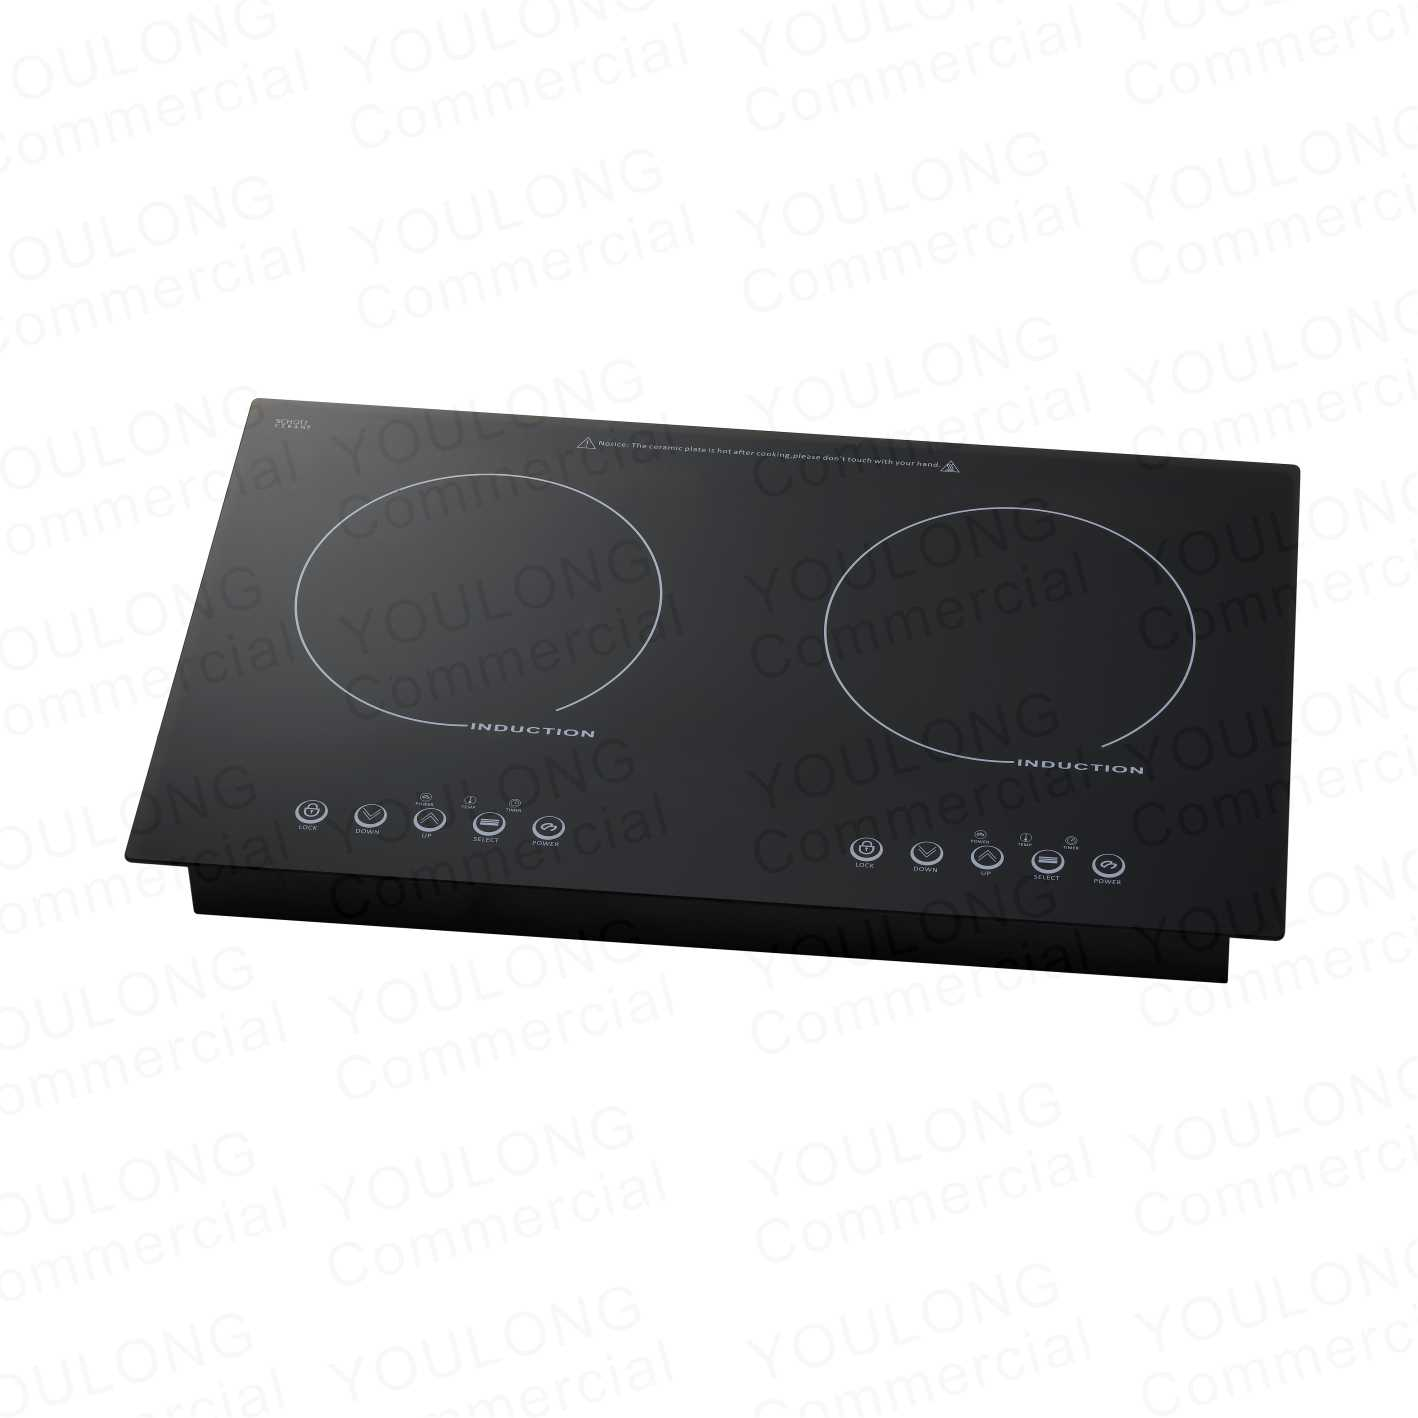 induction cooker(2 burner) DI-350 Touch Control